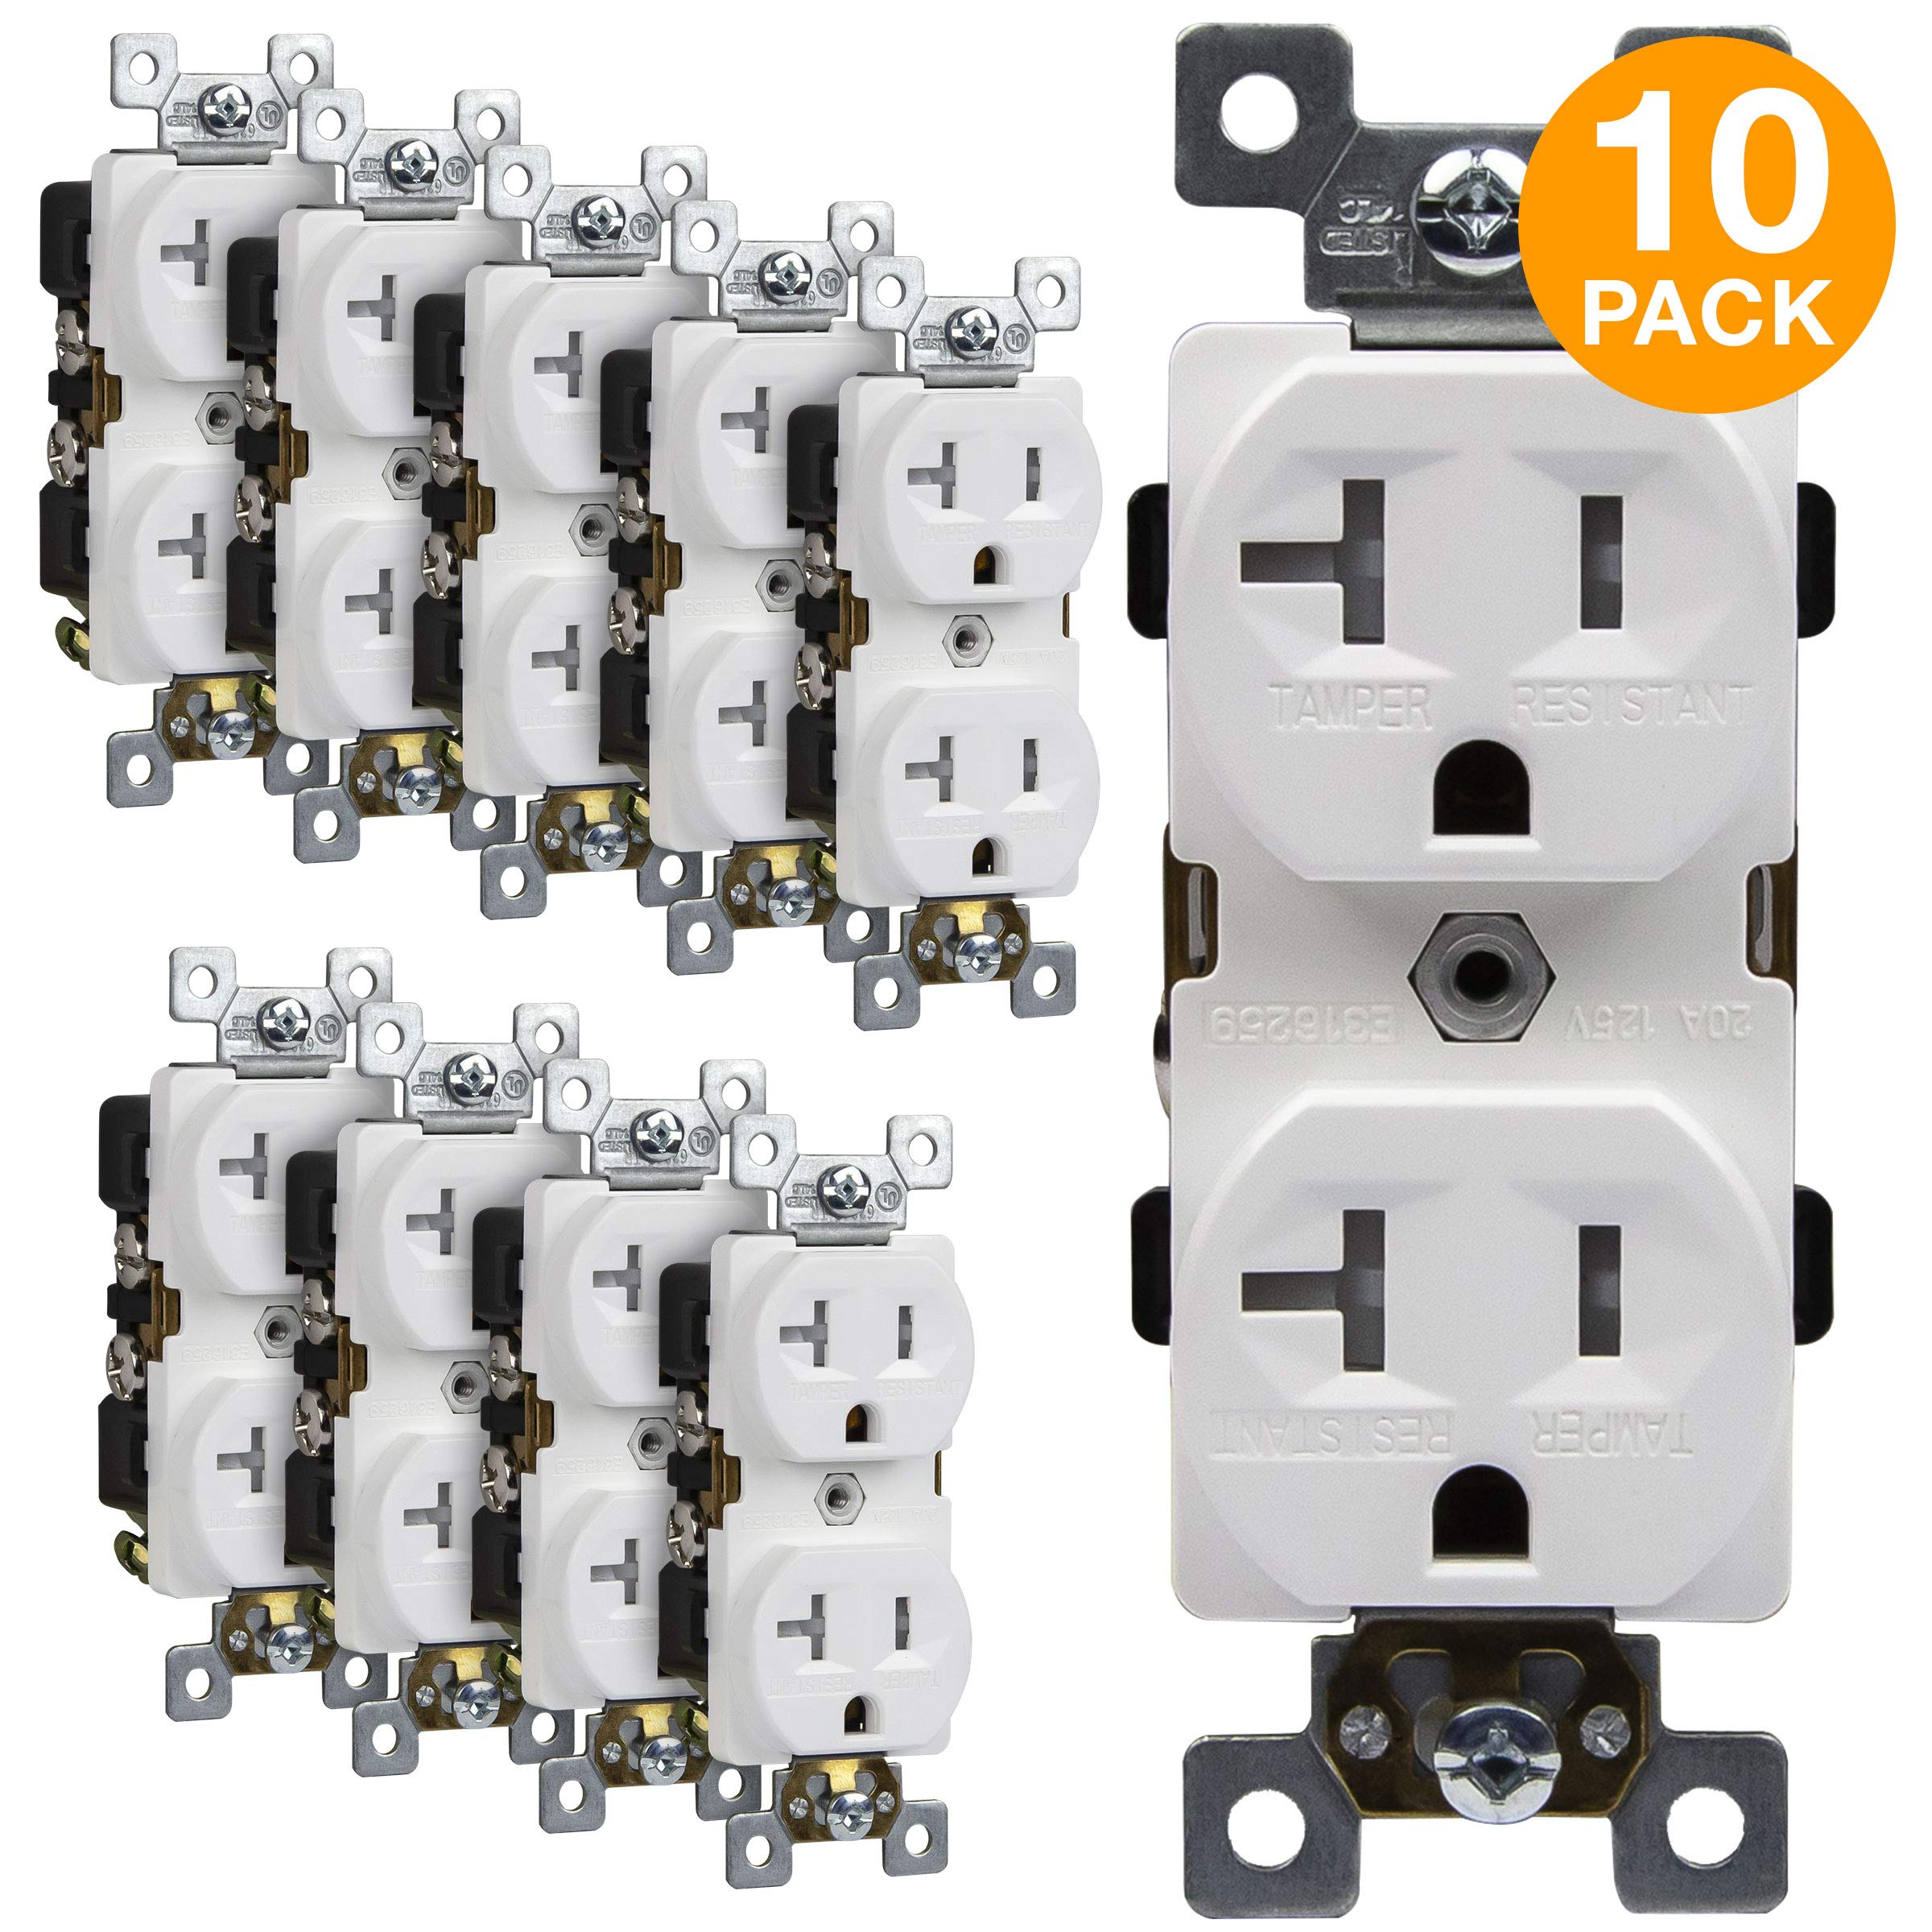 ENERLITES Duplex Receptacle, Tamper-Resistant, Commercial Grade Outlets, 20A 125V, Self-Grounding, 2-Pole, 3-Wire, 5-20R, UL Listed, 62040-TR-W-10PCS, White (10 Pack)